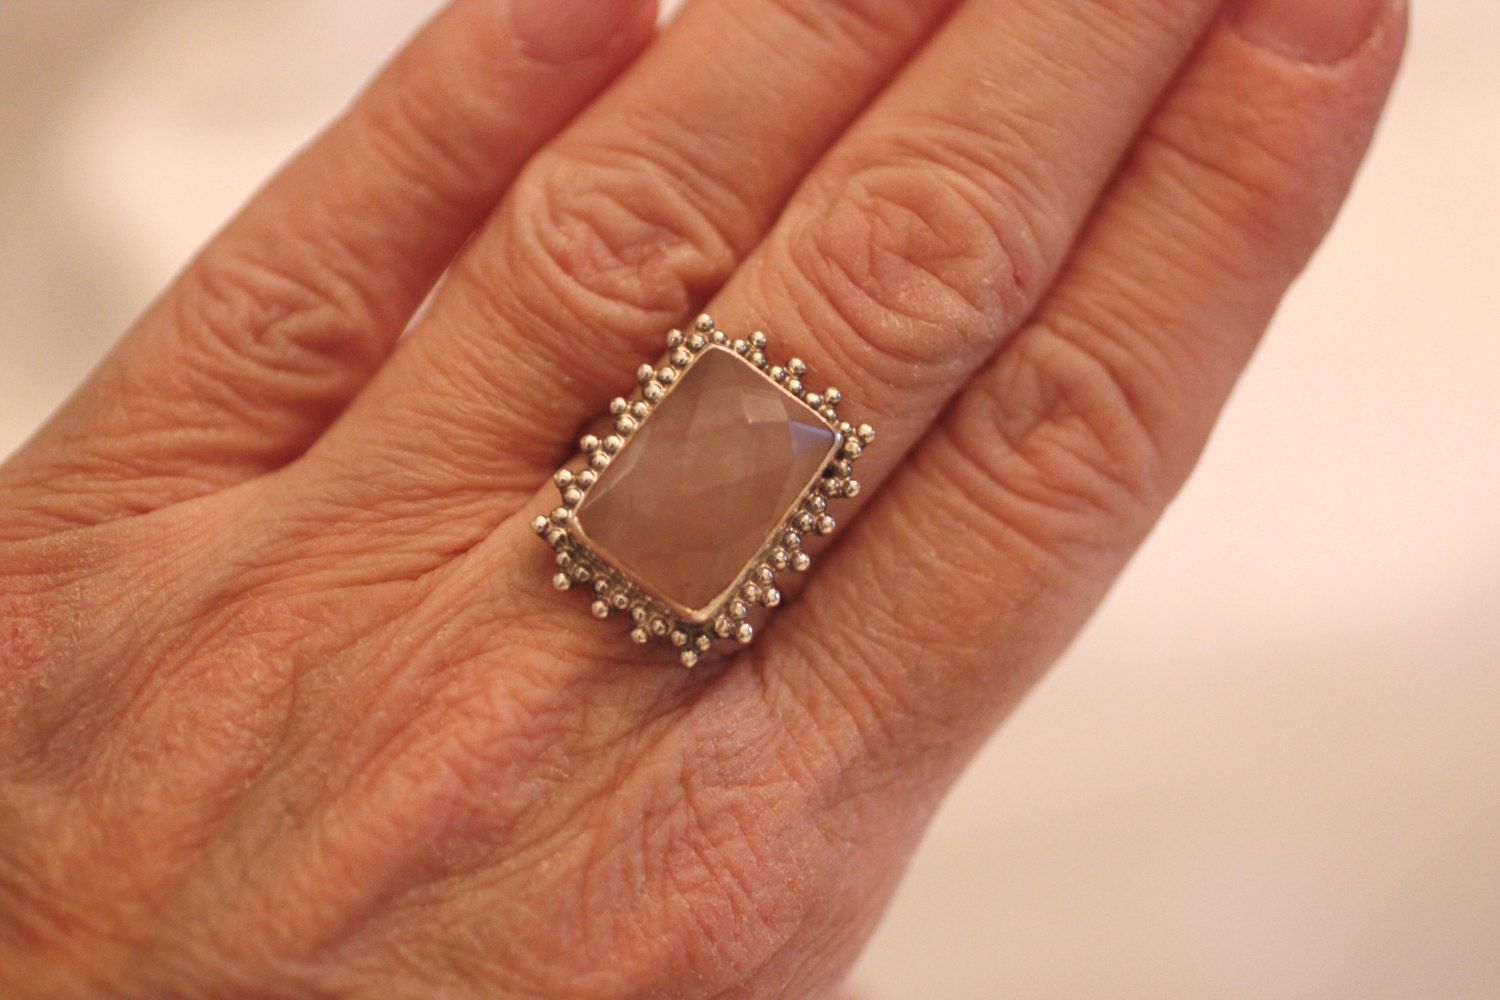 Rose Quartz Statement Ring 925 Marked Large Rectangular Faceted Rose Quartz Pink Elegant Silver Beaded Setting Vintage Boho Chic Size 6 3/4 – Everyday Chic Work & Play Outfits